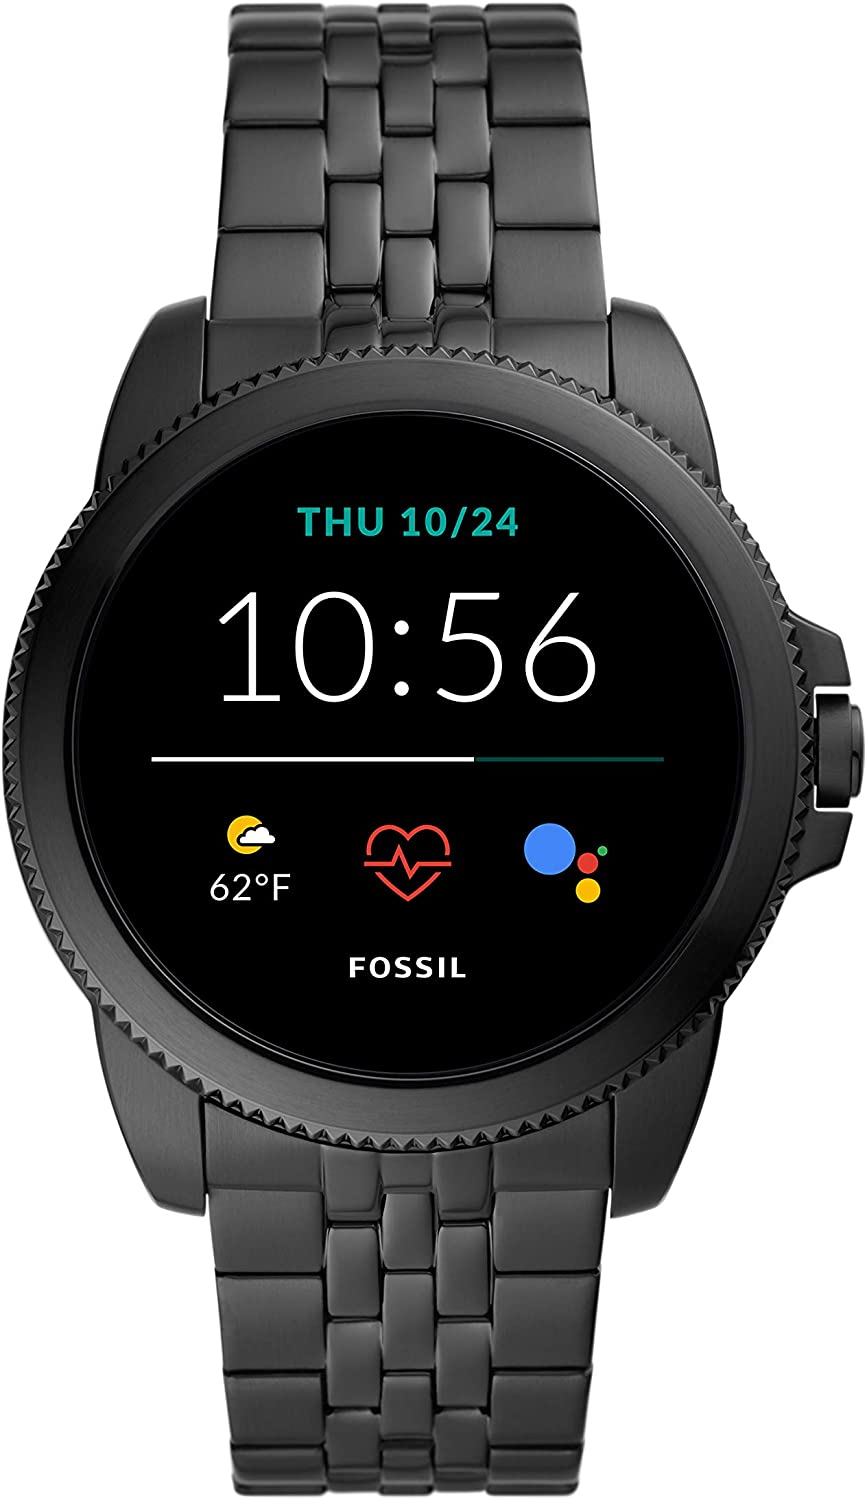 NEW Fossil Men's Gen 5E 44mm Stainless Steel Touchscreen Smartwatch with Speaker, Heart Rate, GPS, NFC, and Smartphone Notifications